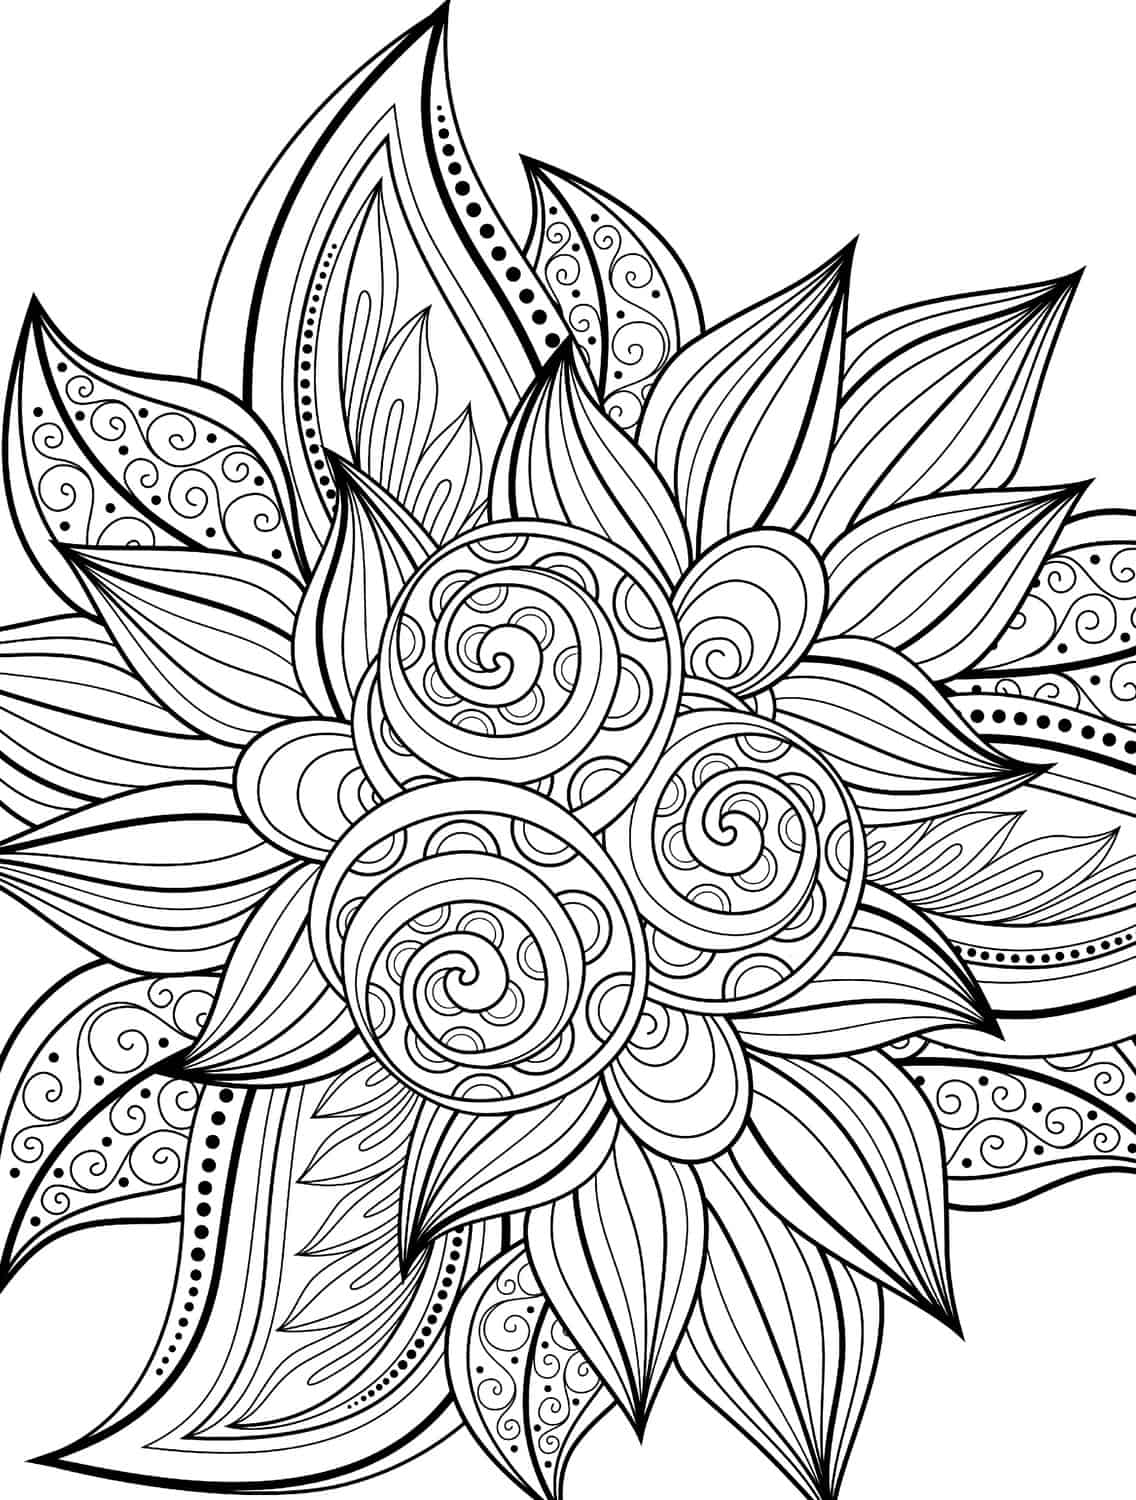 printable detailed coloring pages 10 free printable holiday adult coloring pages printable coloring pages detailed